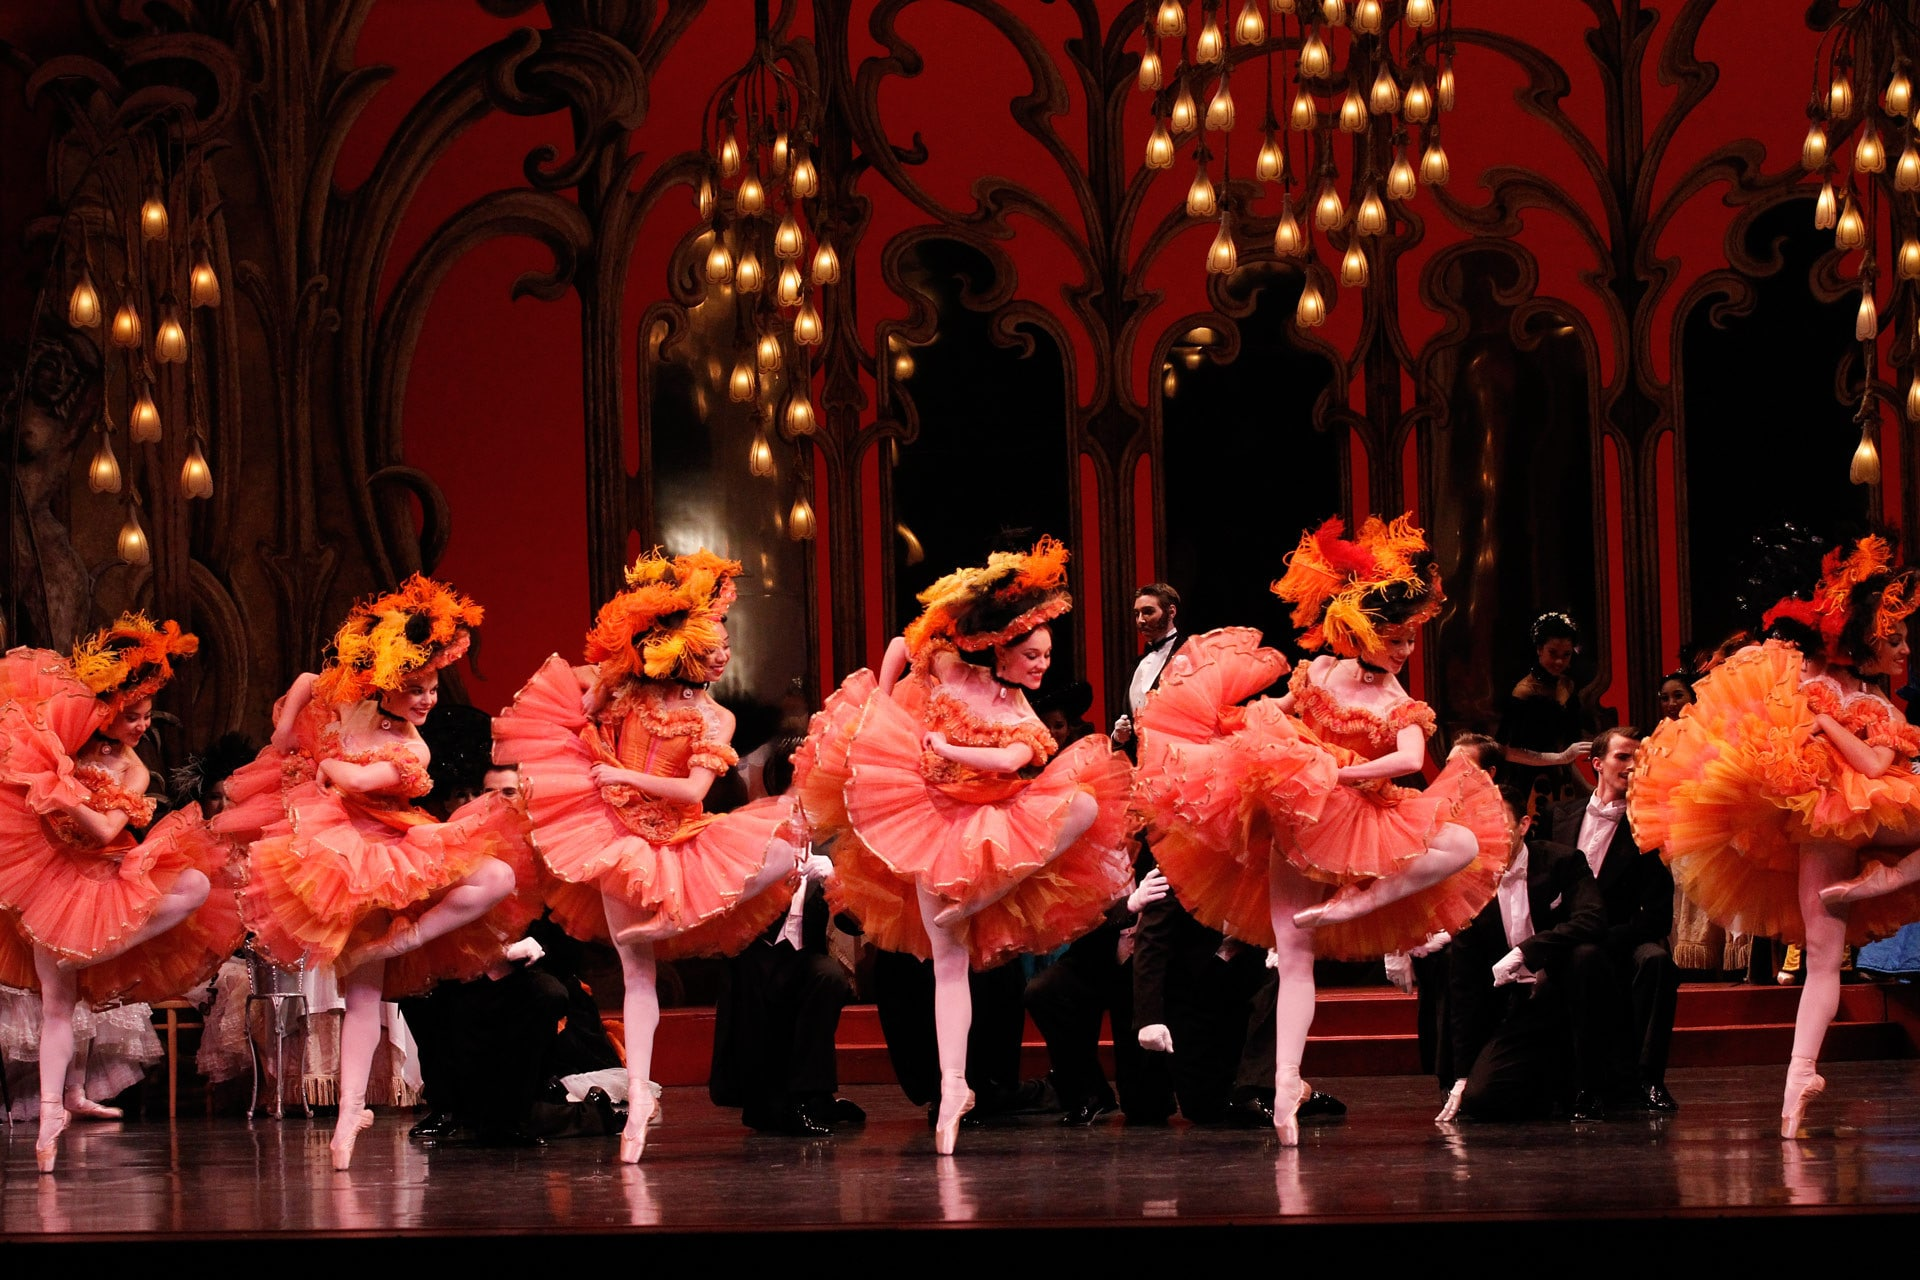 Win a glamorous night out at the ballet for you and three friends